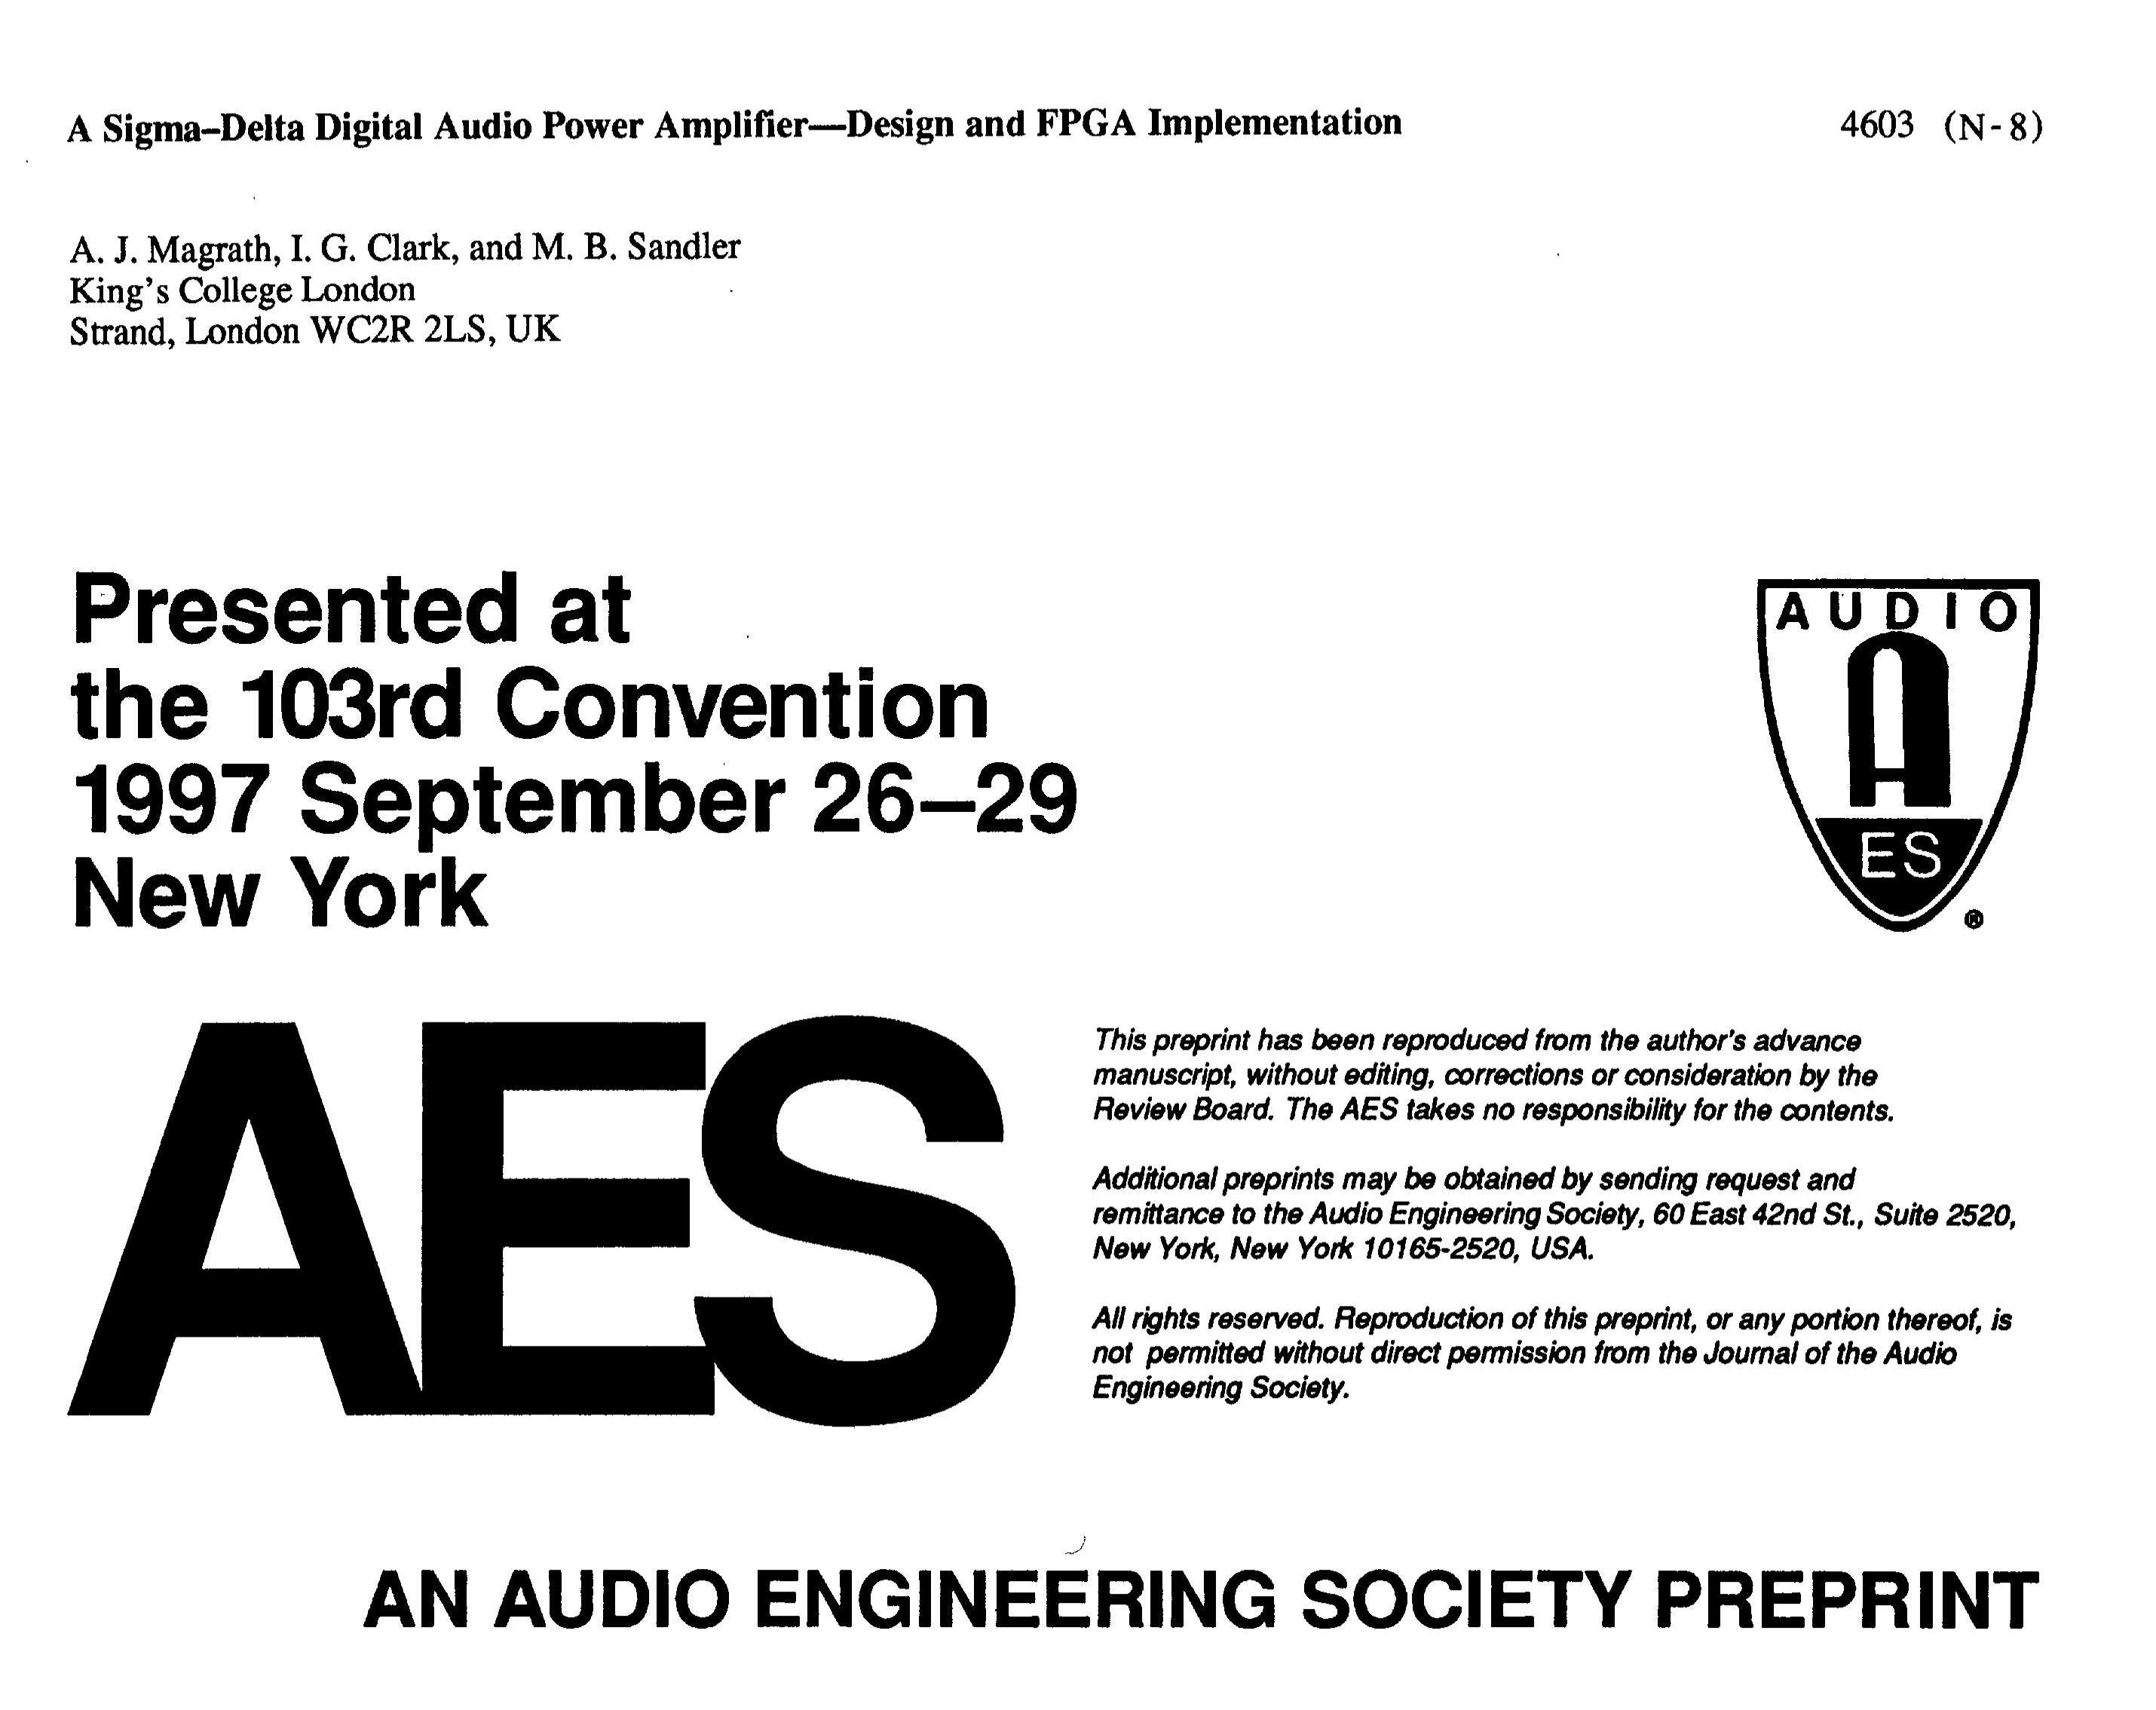 Aes E Library A Sigma Delta Digital Audio Power Amplifier Design Figure1 1 Bit Adder And Fpga Implementation